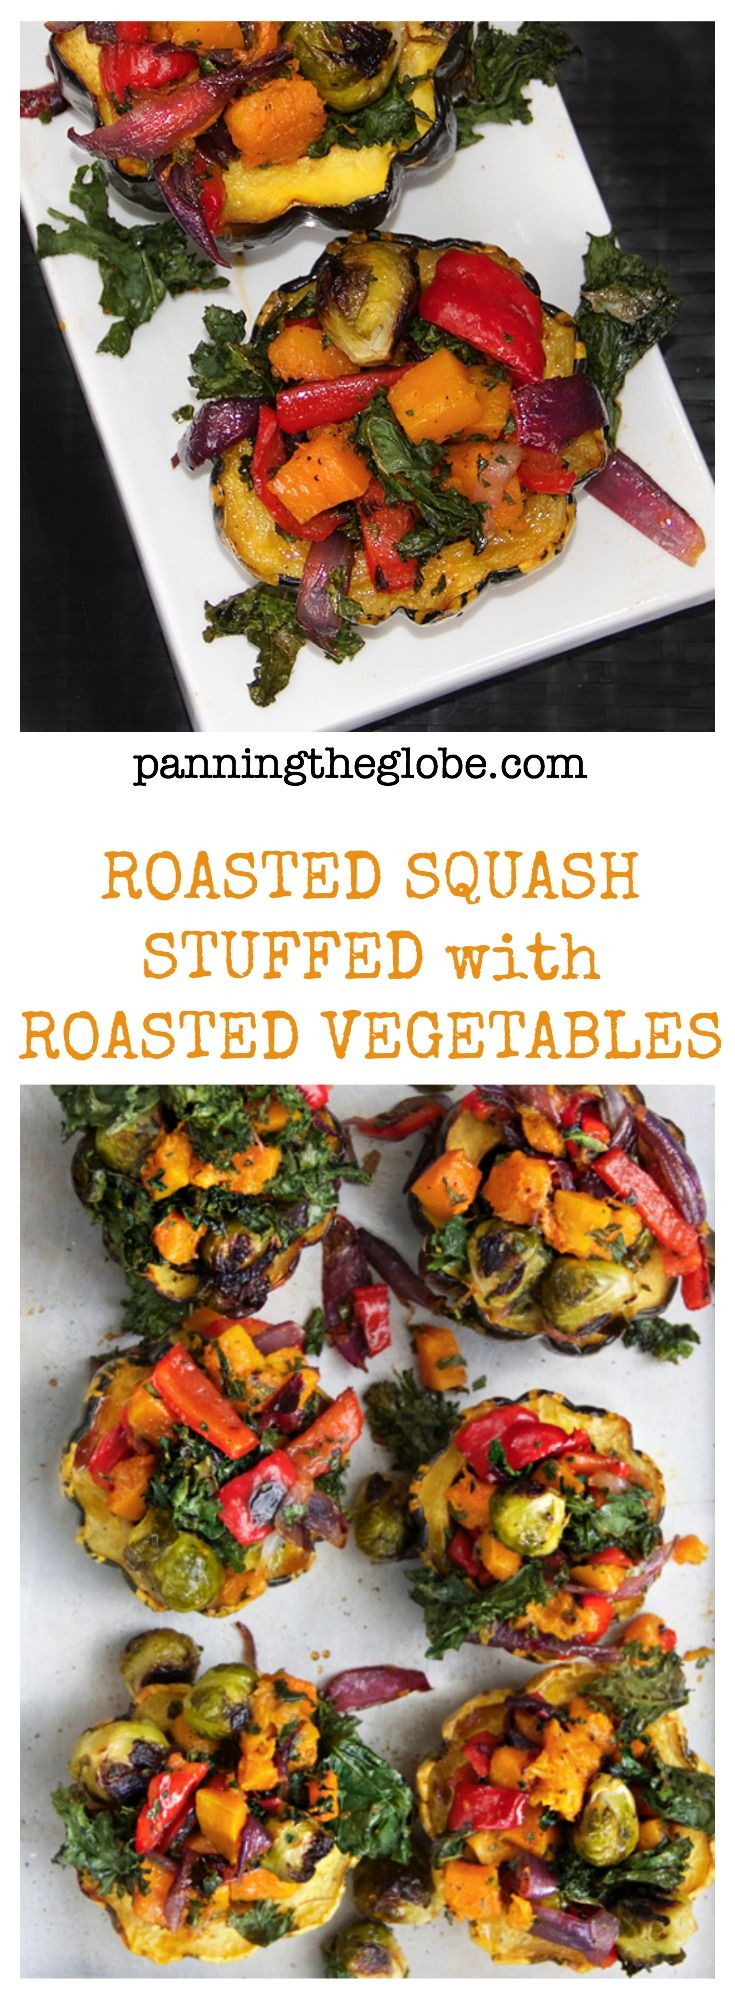 Roasted Squash stuffed with Roasted Vegetables: stellar side dish! or vegetarian main dish.